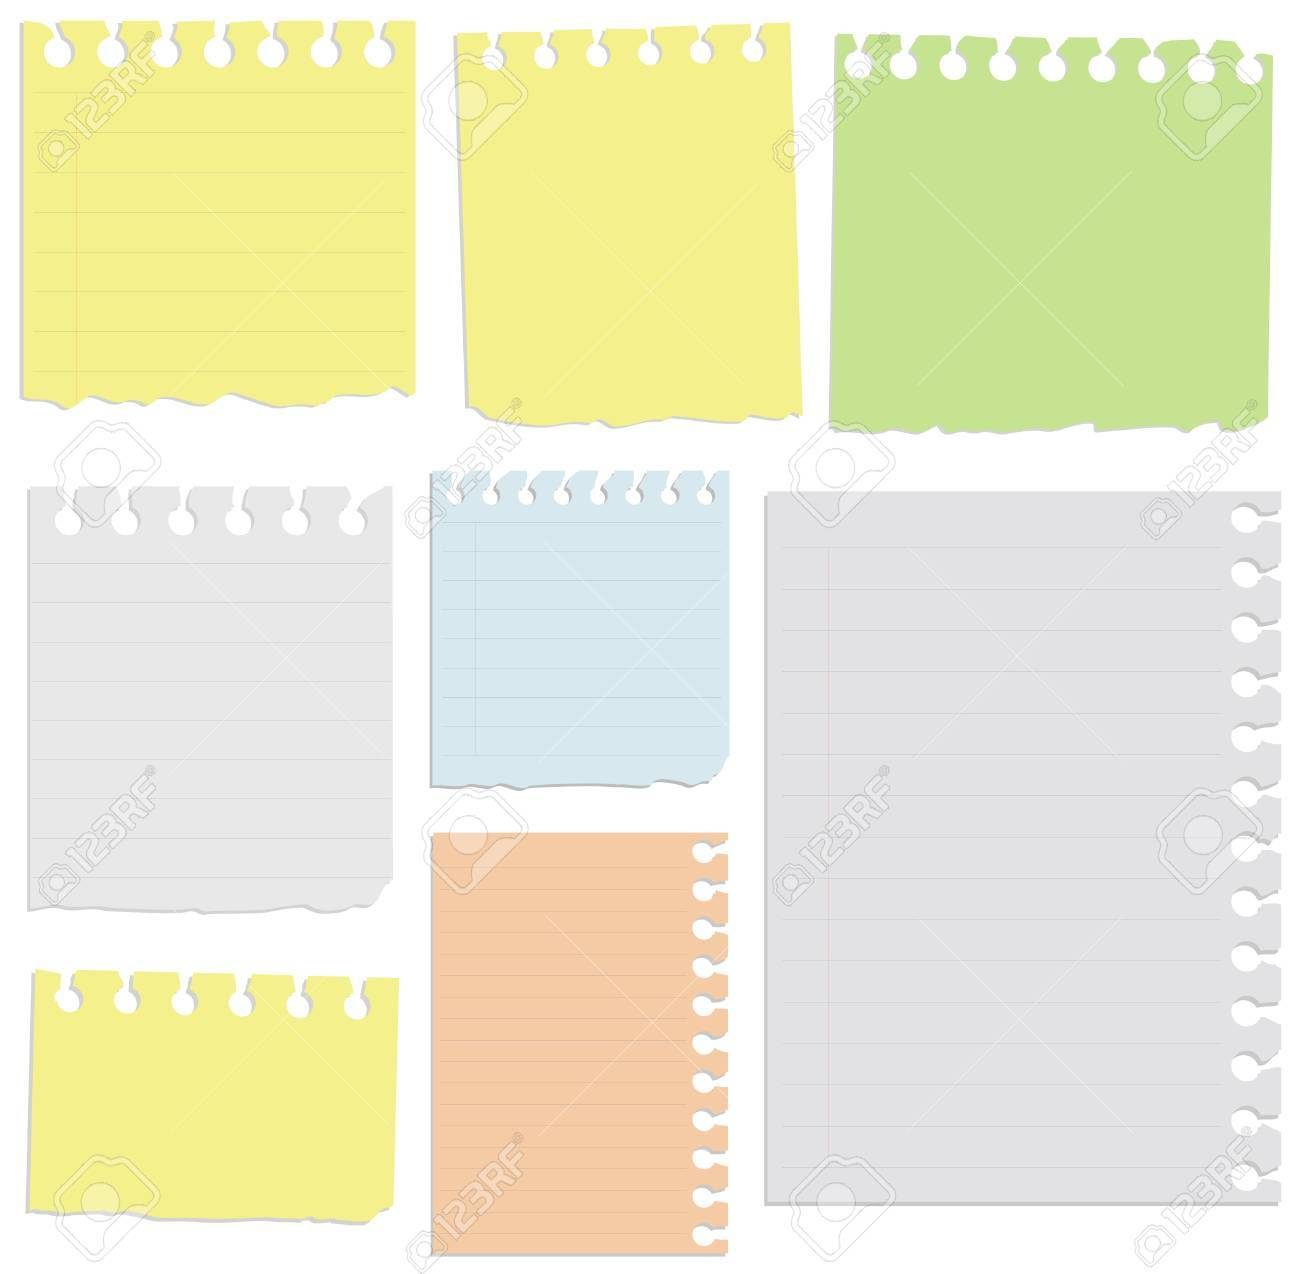 All sheets organized in layers for usability. - 5724175